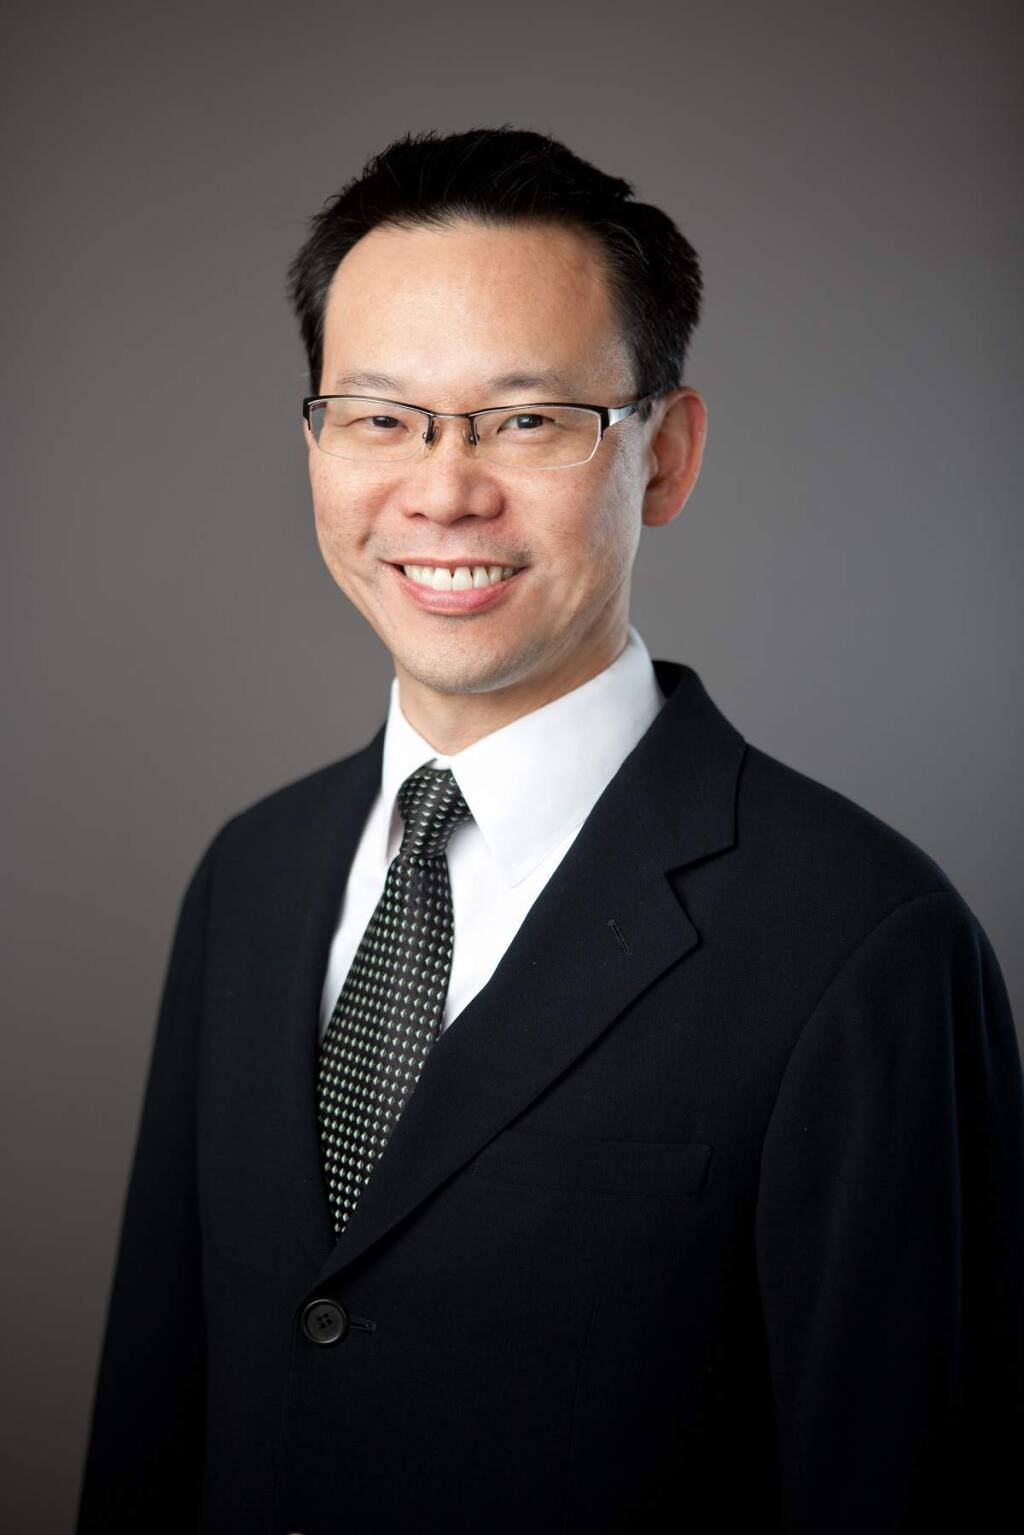 Jason Whong is a senior wealth planning strategist for The Private Client Reserve of U.S. Bank.